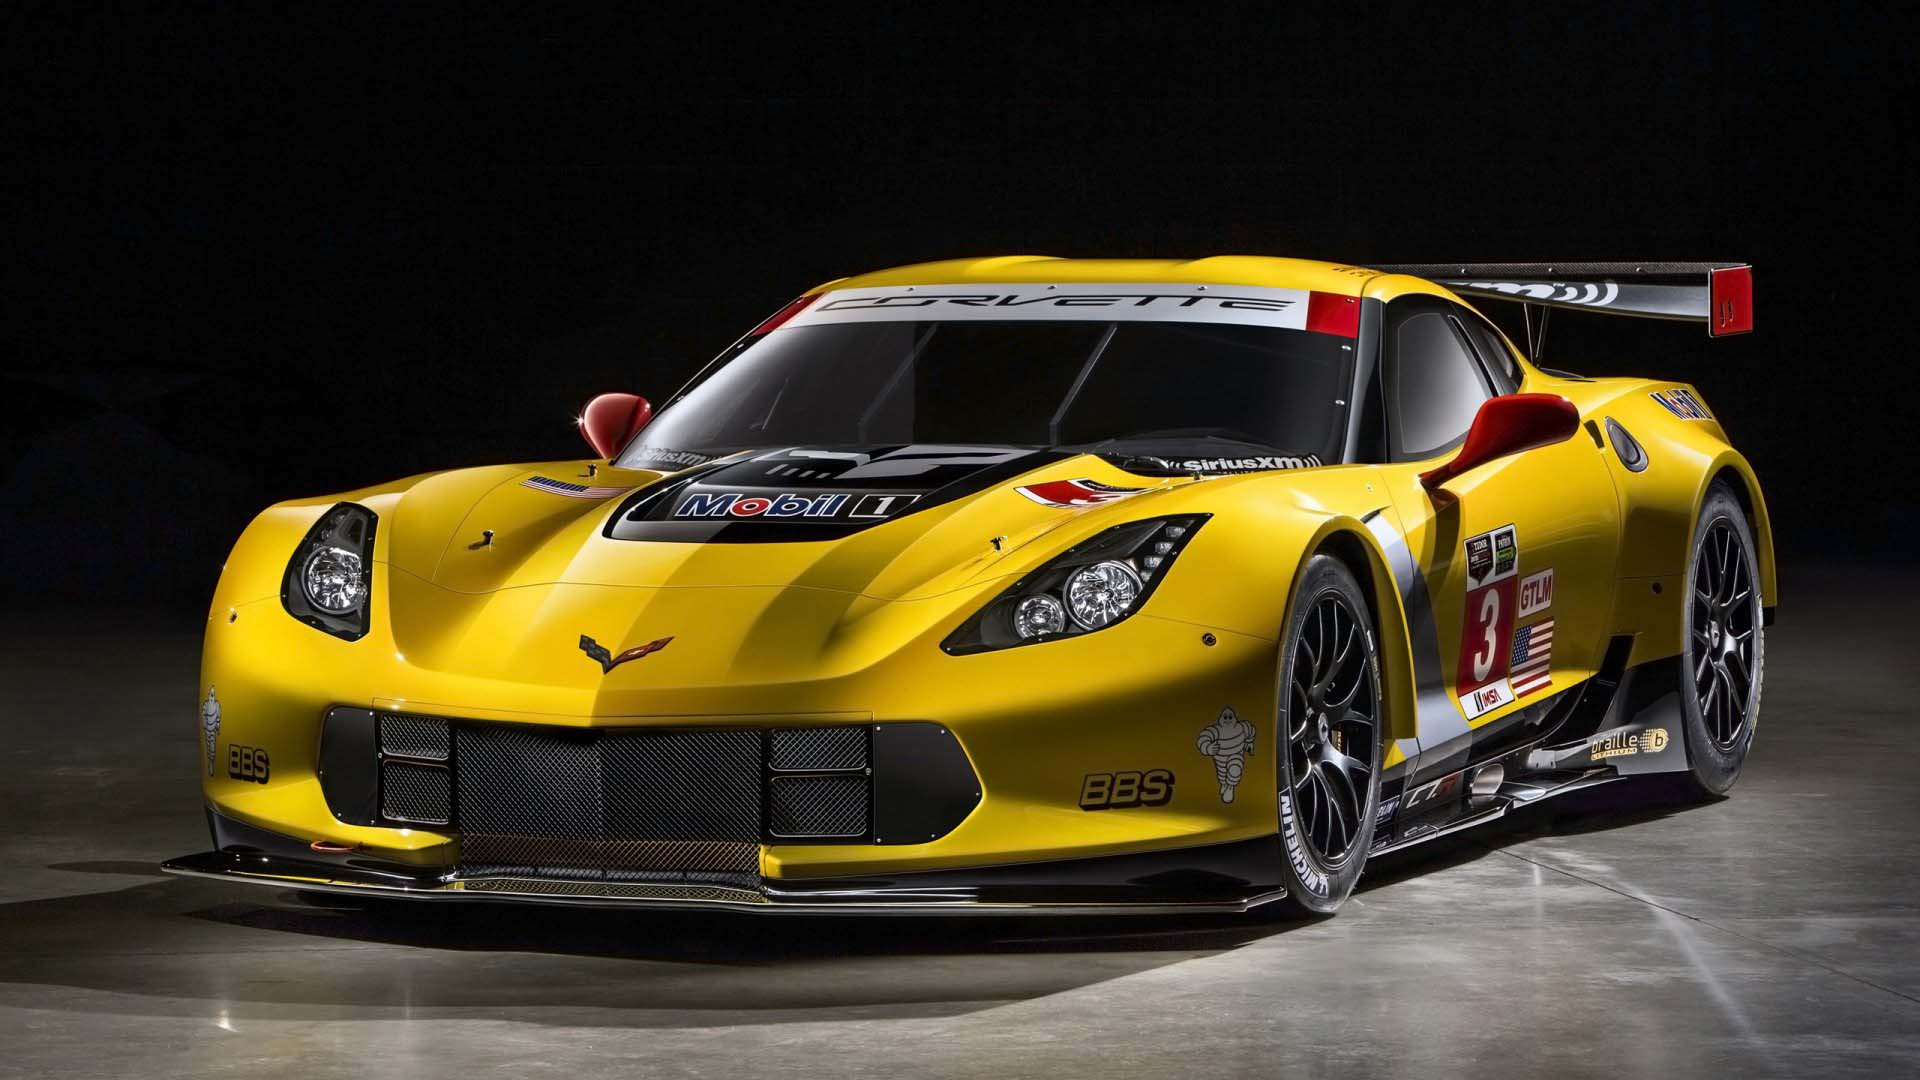 2015 z06 wallpaper - photo #33